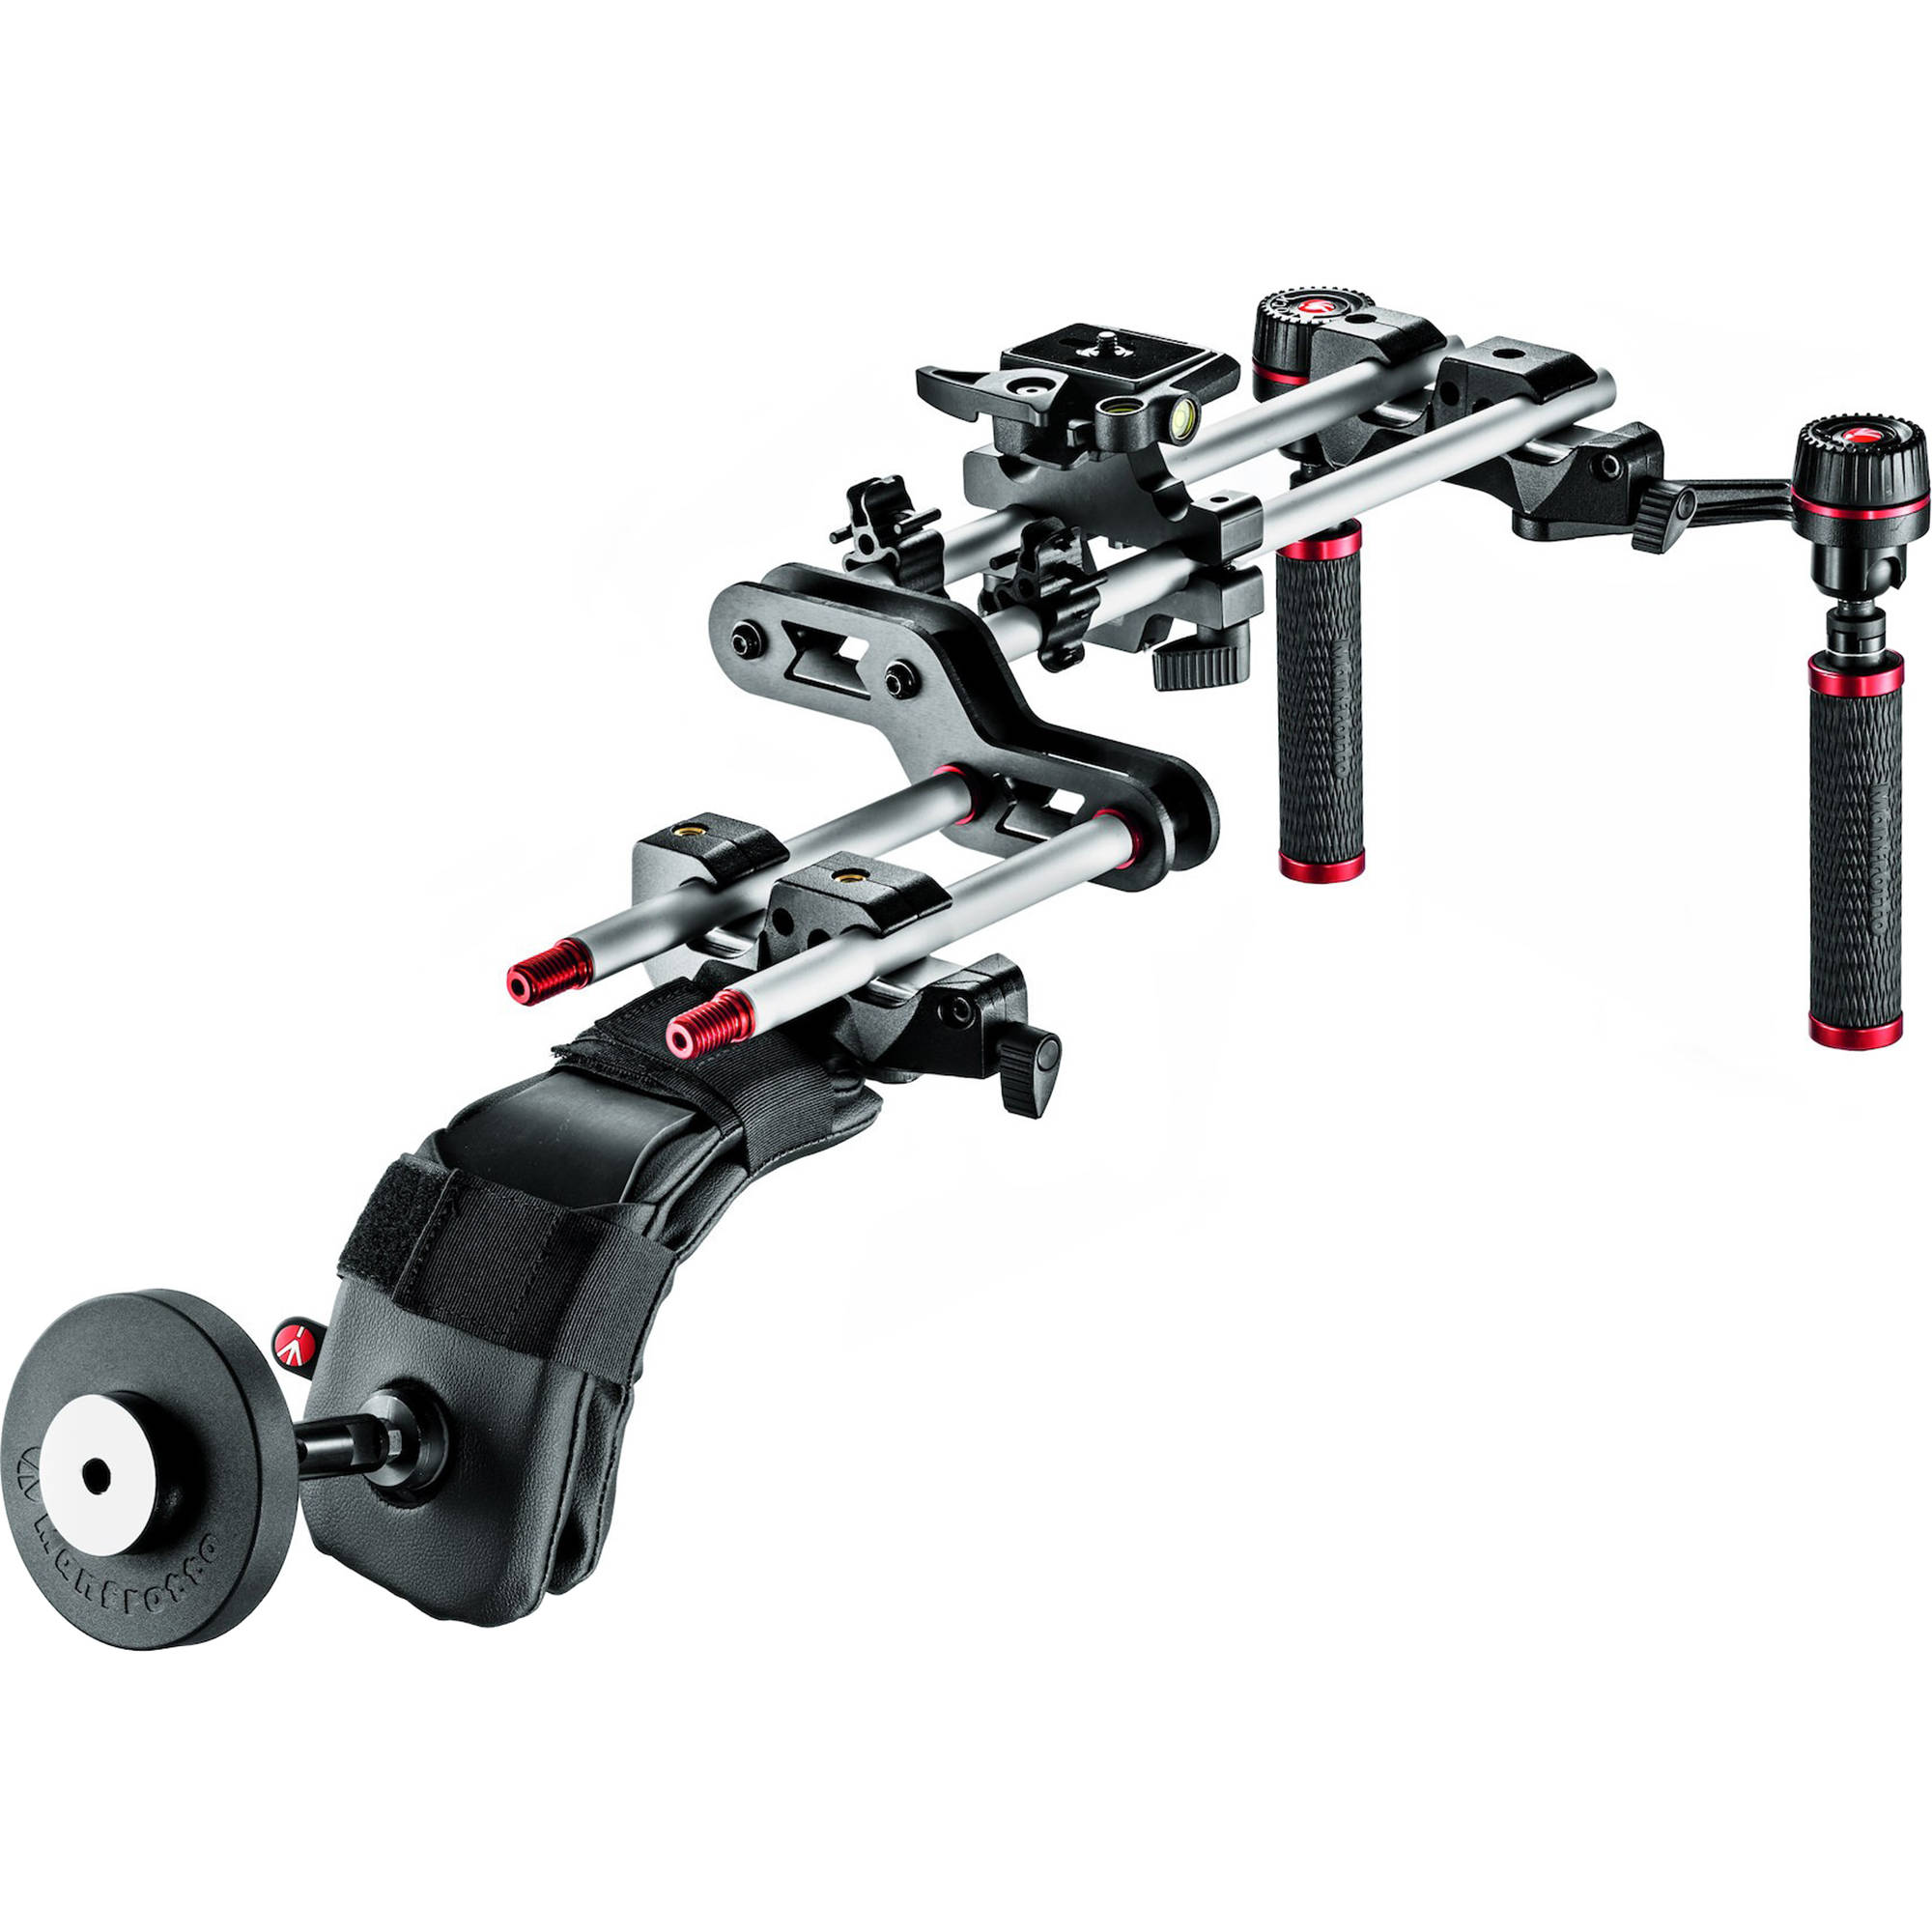 Риг Manfrotto Sympla